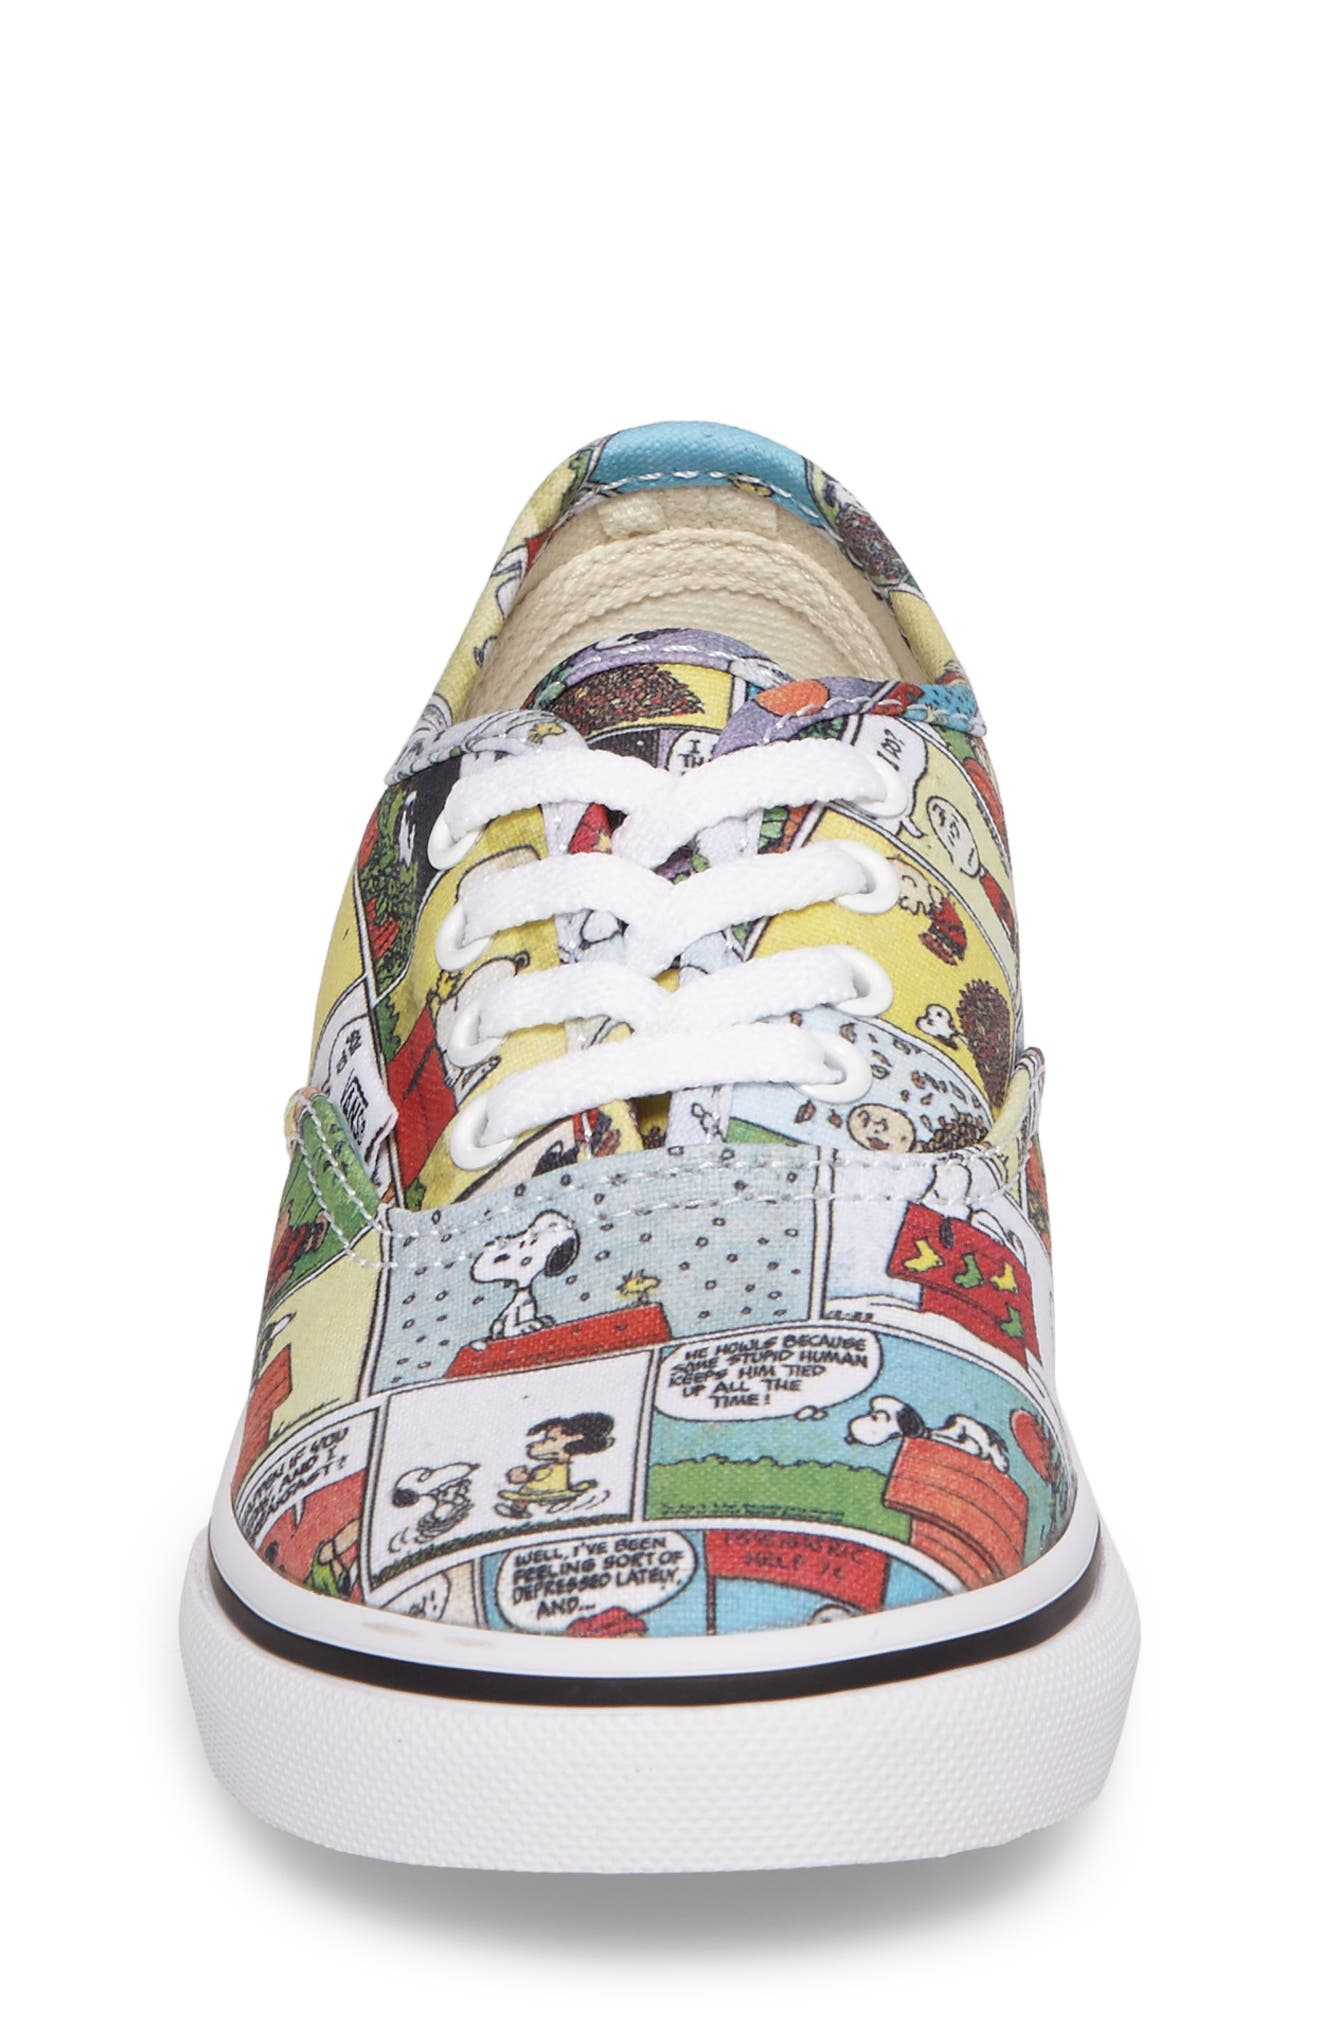 x Peanuts Authentic Low Top Sneaker,                             Alternate thumbnail 4, color,                             001